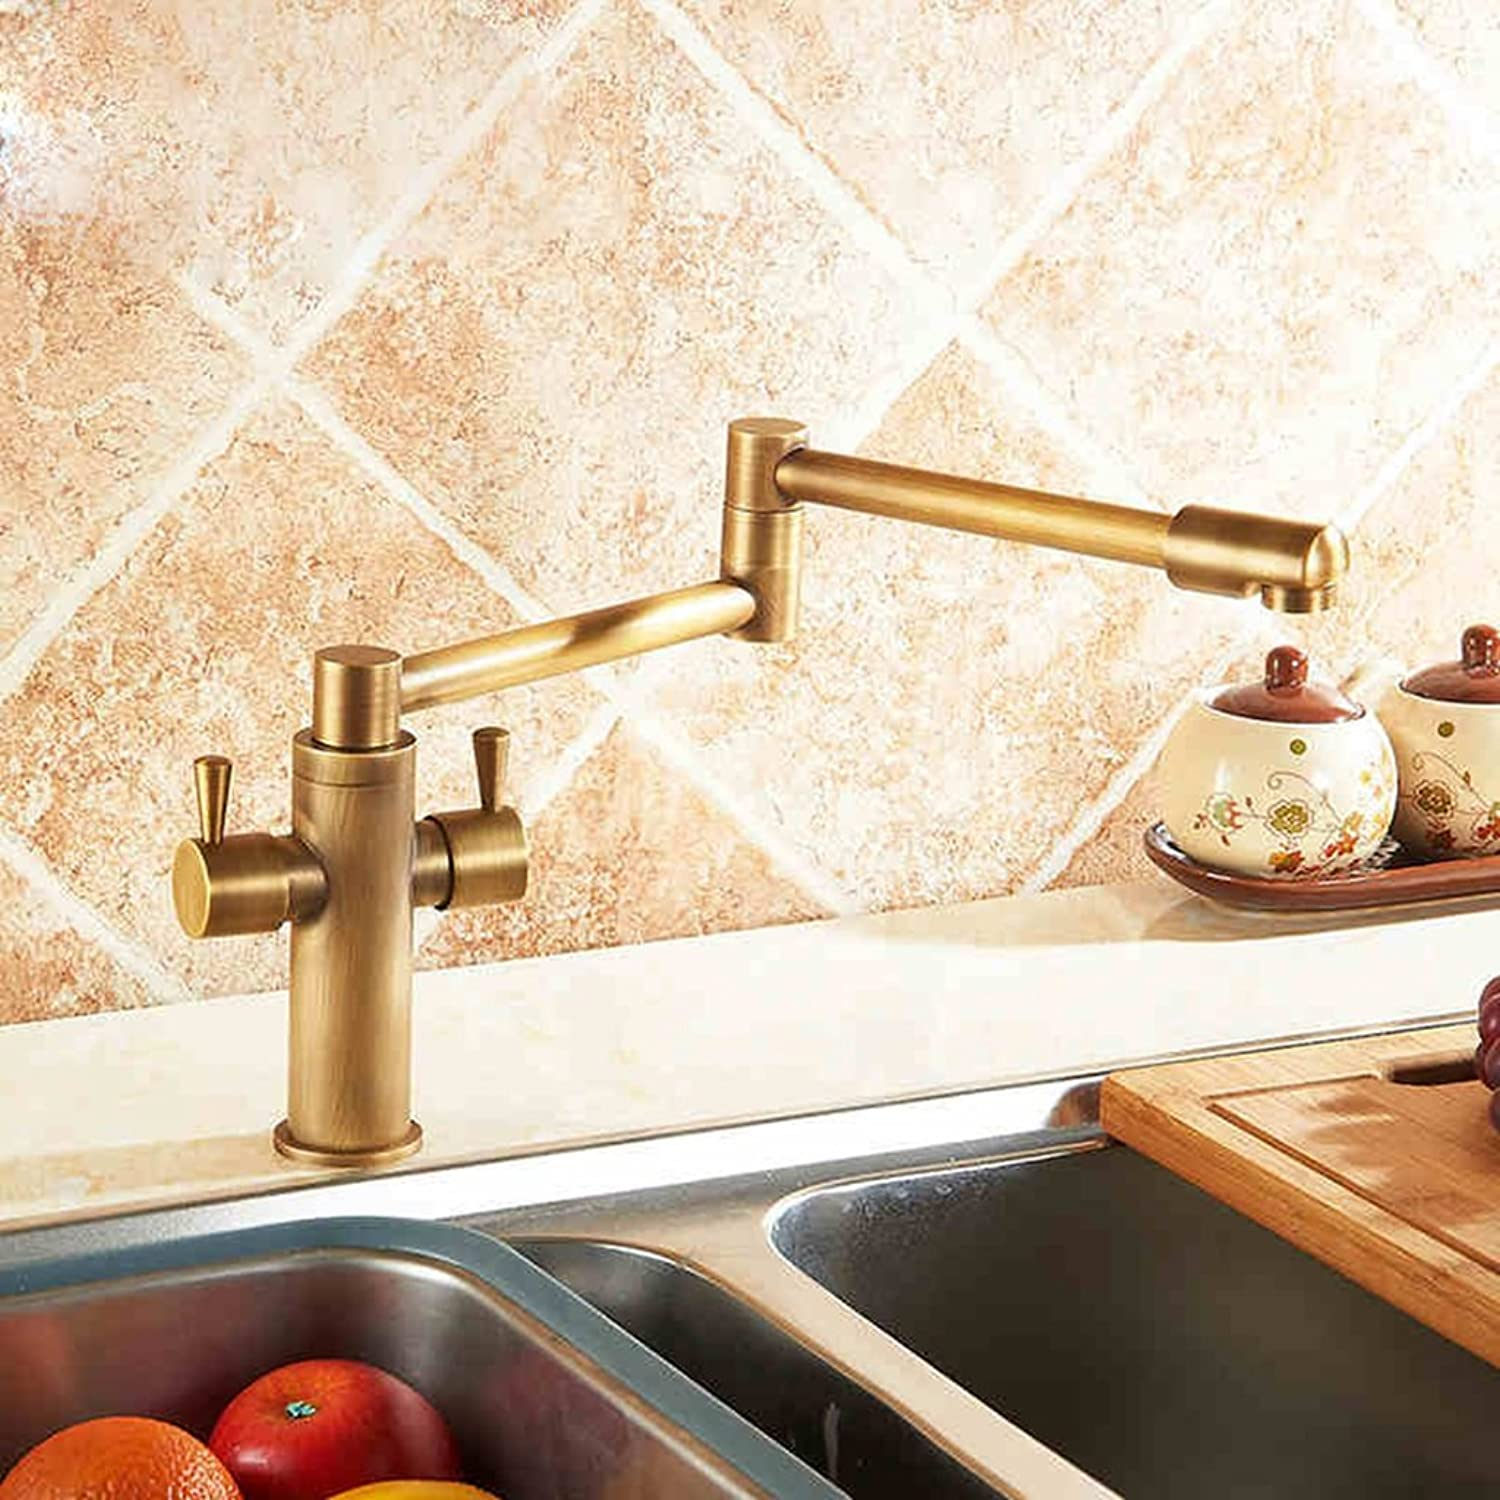 YMSLT Bathroom Basin Taps European antique kitchen faucet hot and cold all copper collapsible telescopic vegetables basin sink faucet 360 redation Sink Taps